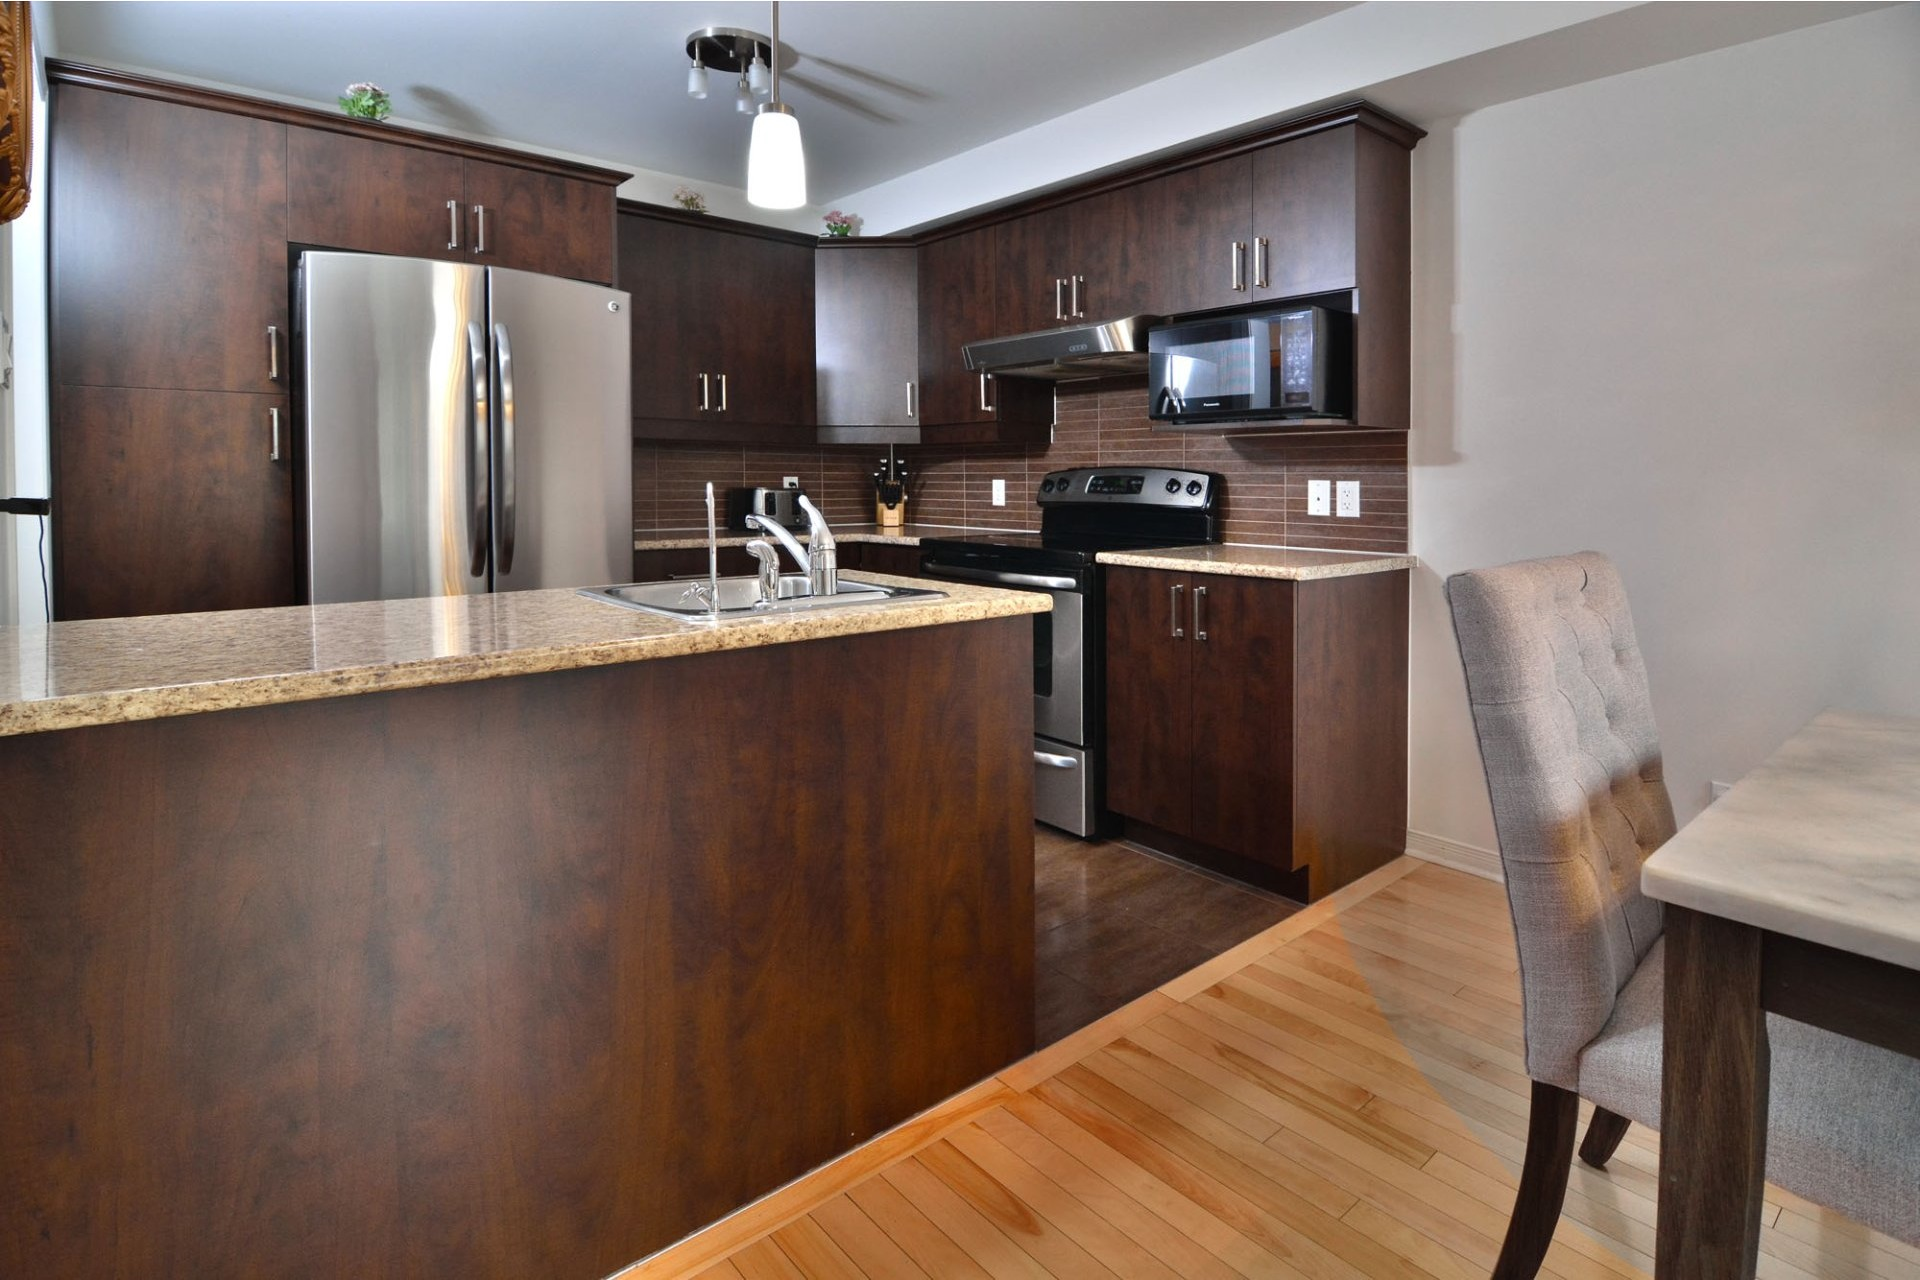 image 7 - House For sale Vaudreuil-Dorion - 12 rooms